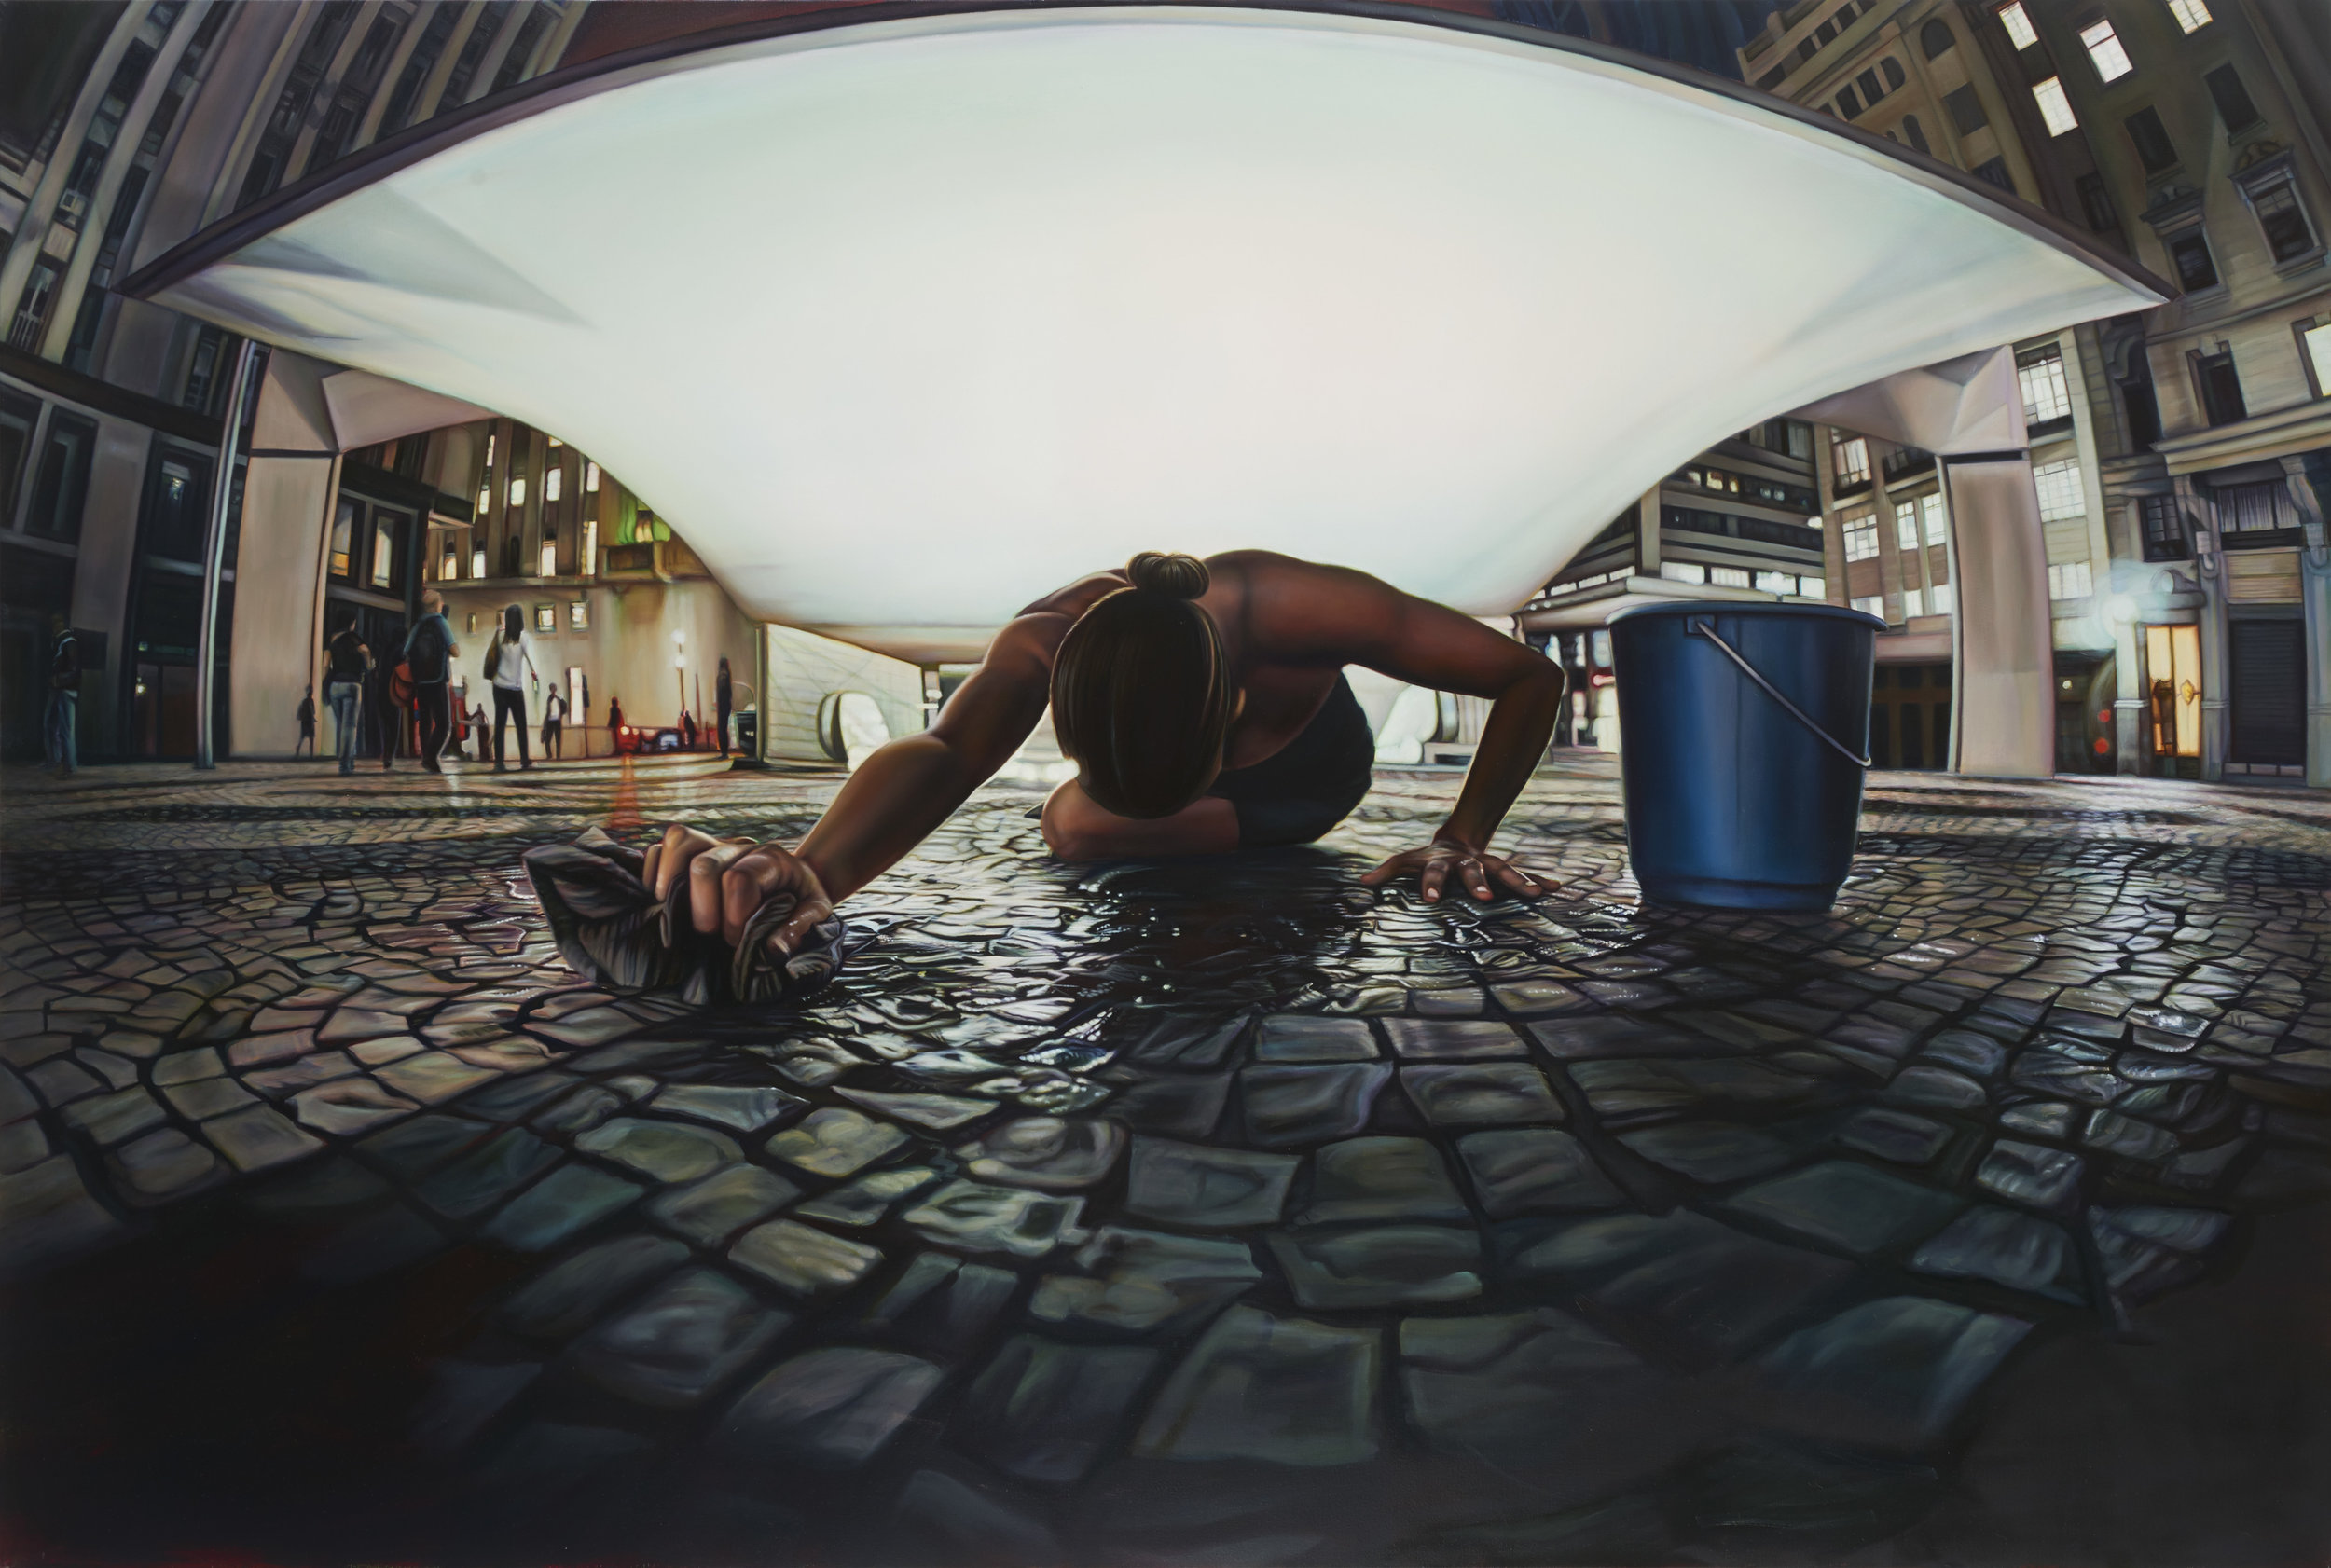 Ana Teresa Fernández,  Untitled (performance documentation in São Paulo Brazil in Plaza Patriarca),  2015, Oil on canvas, 56 x 84 inches (142.2 x 213.4 cm)